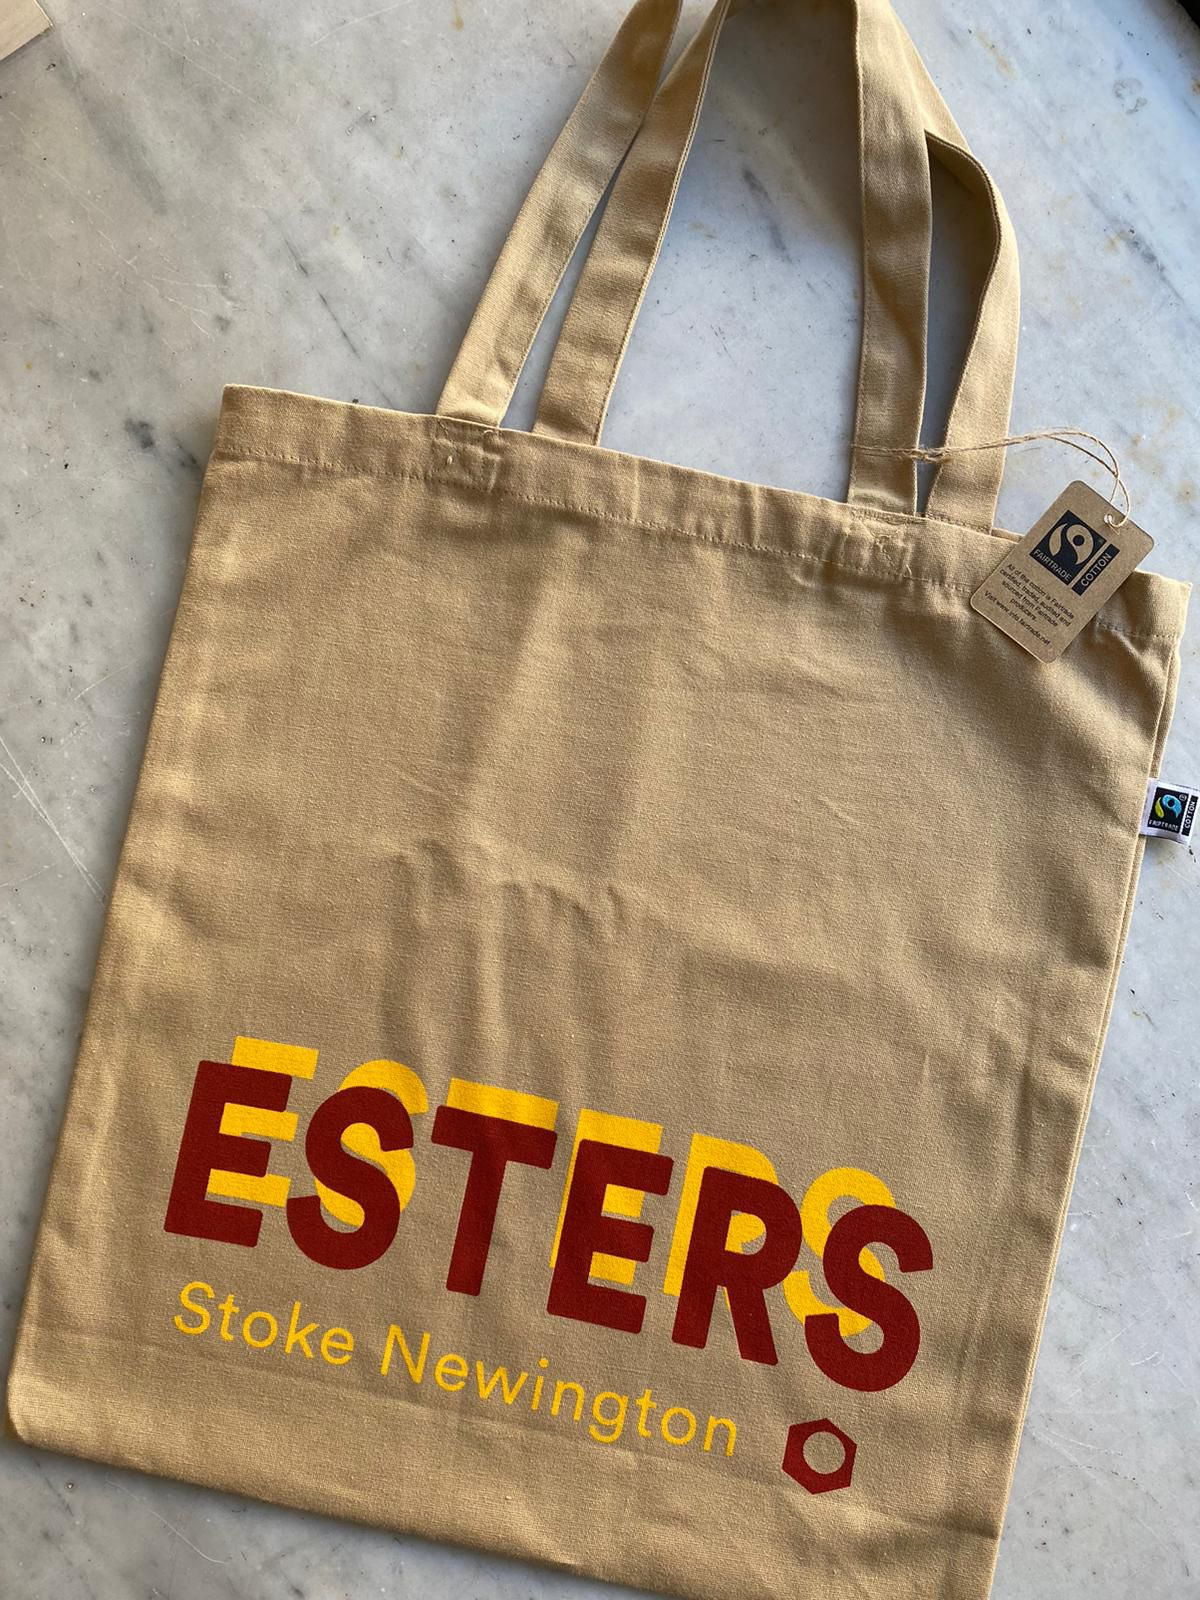 London's best restaurant merch includes this Esters tote bag with the Stoke Newington cafe's red logo